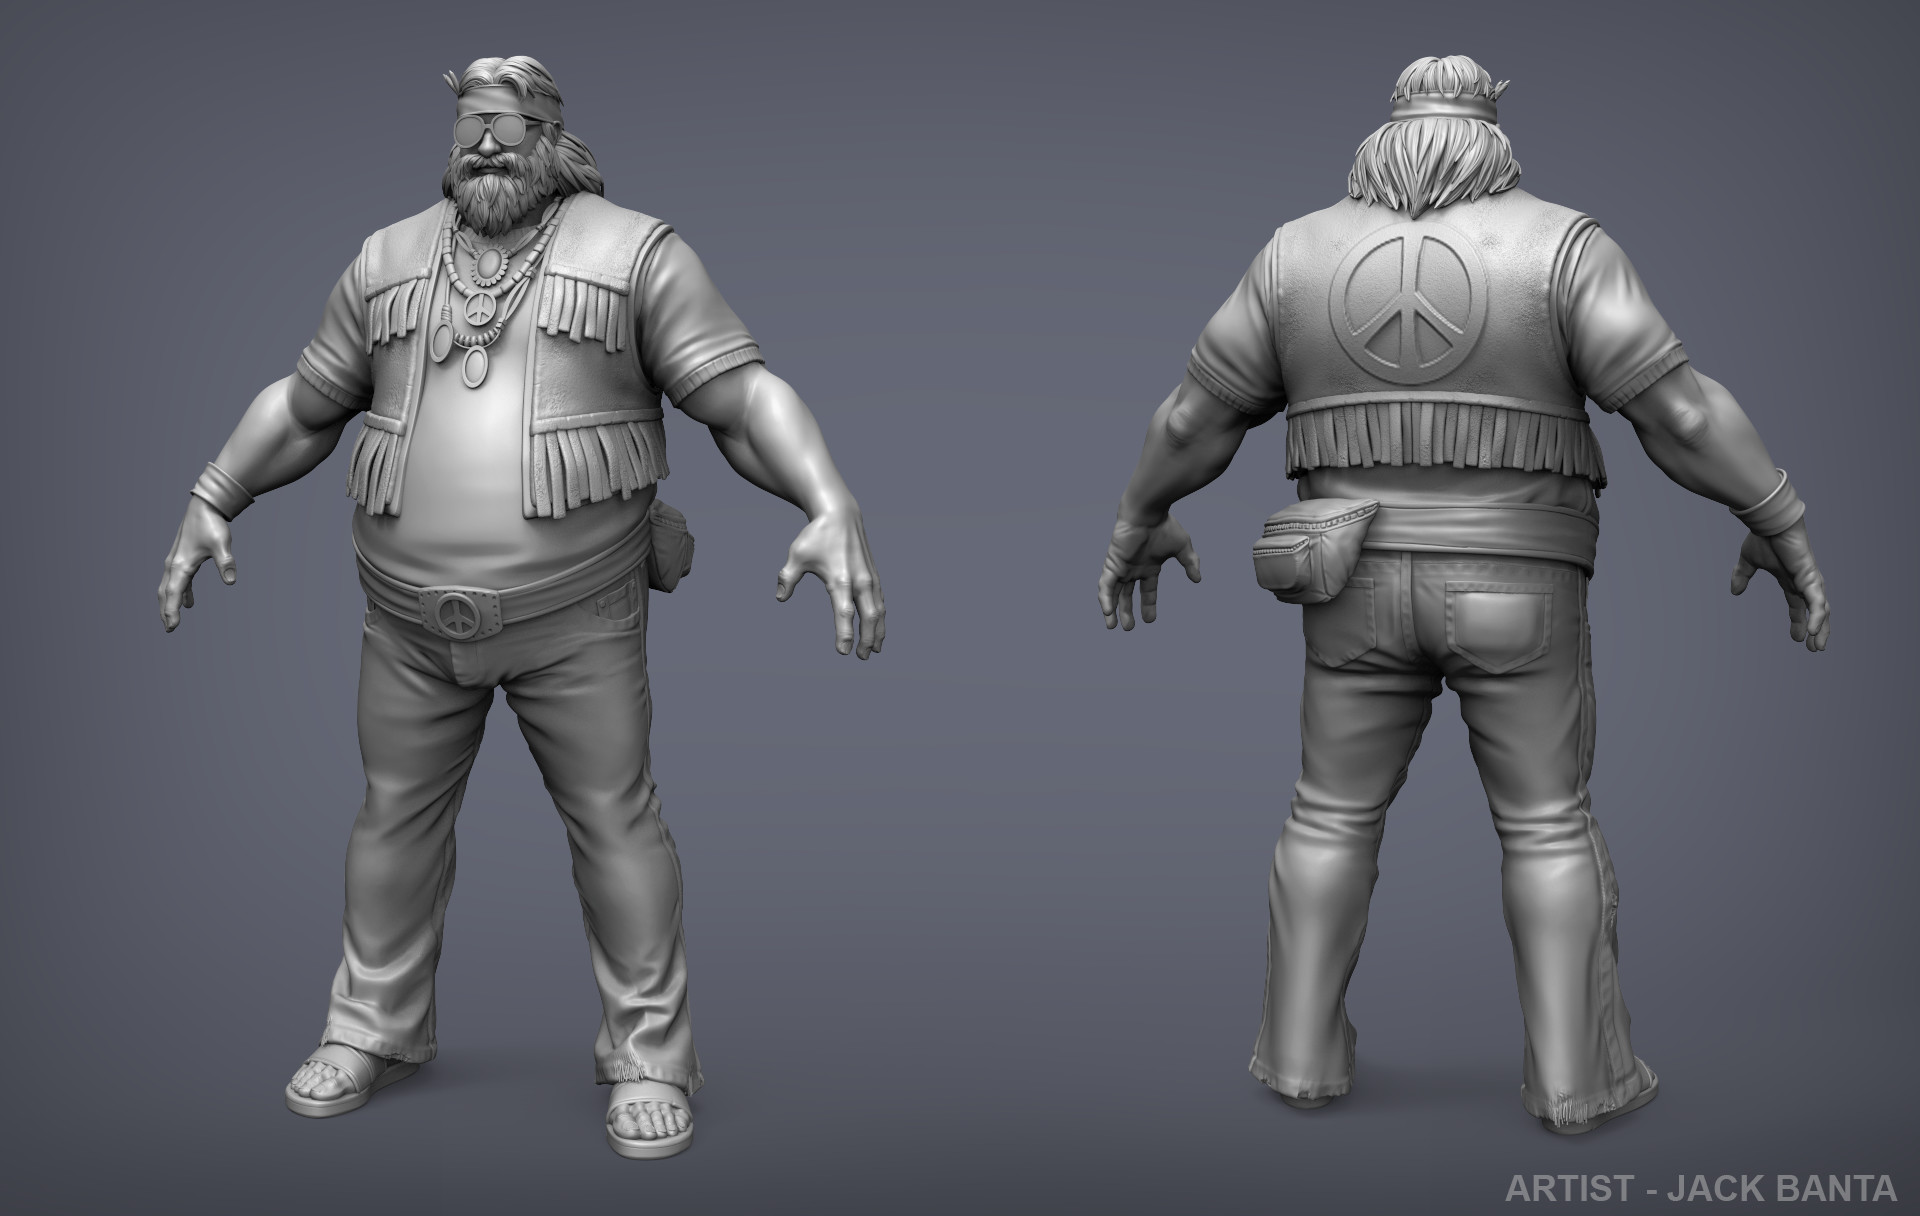 Jack banta bacchus high poly